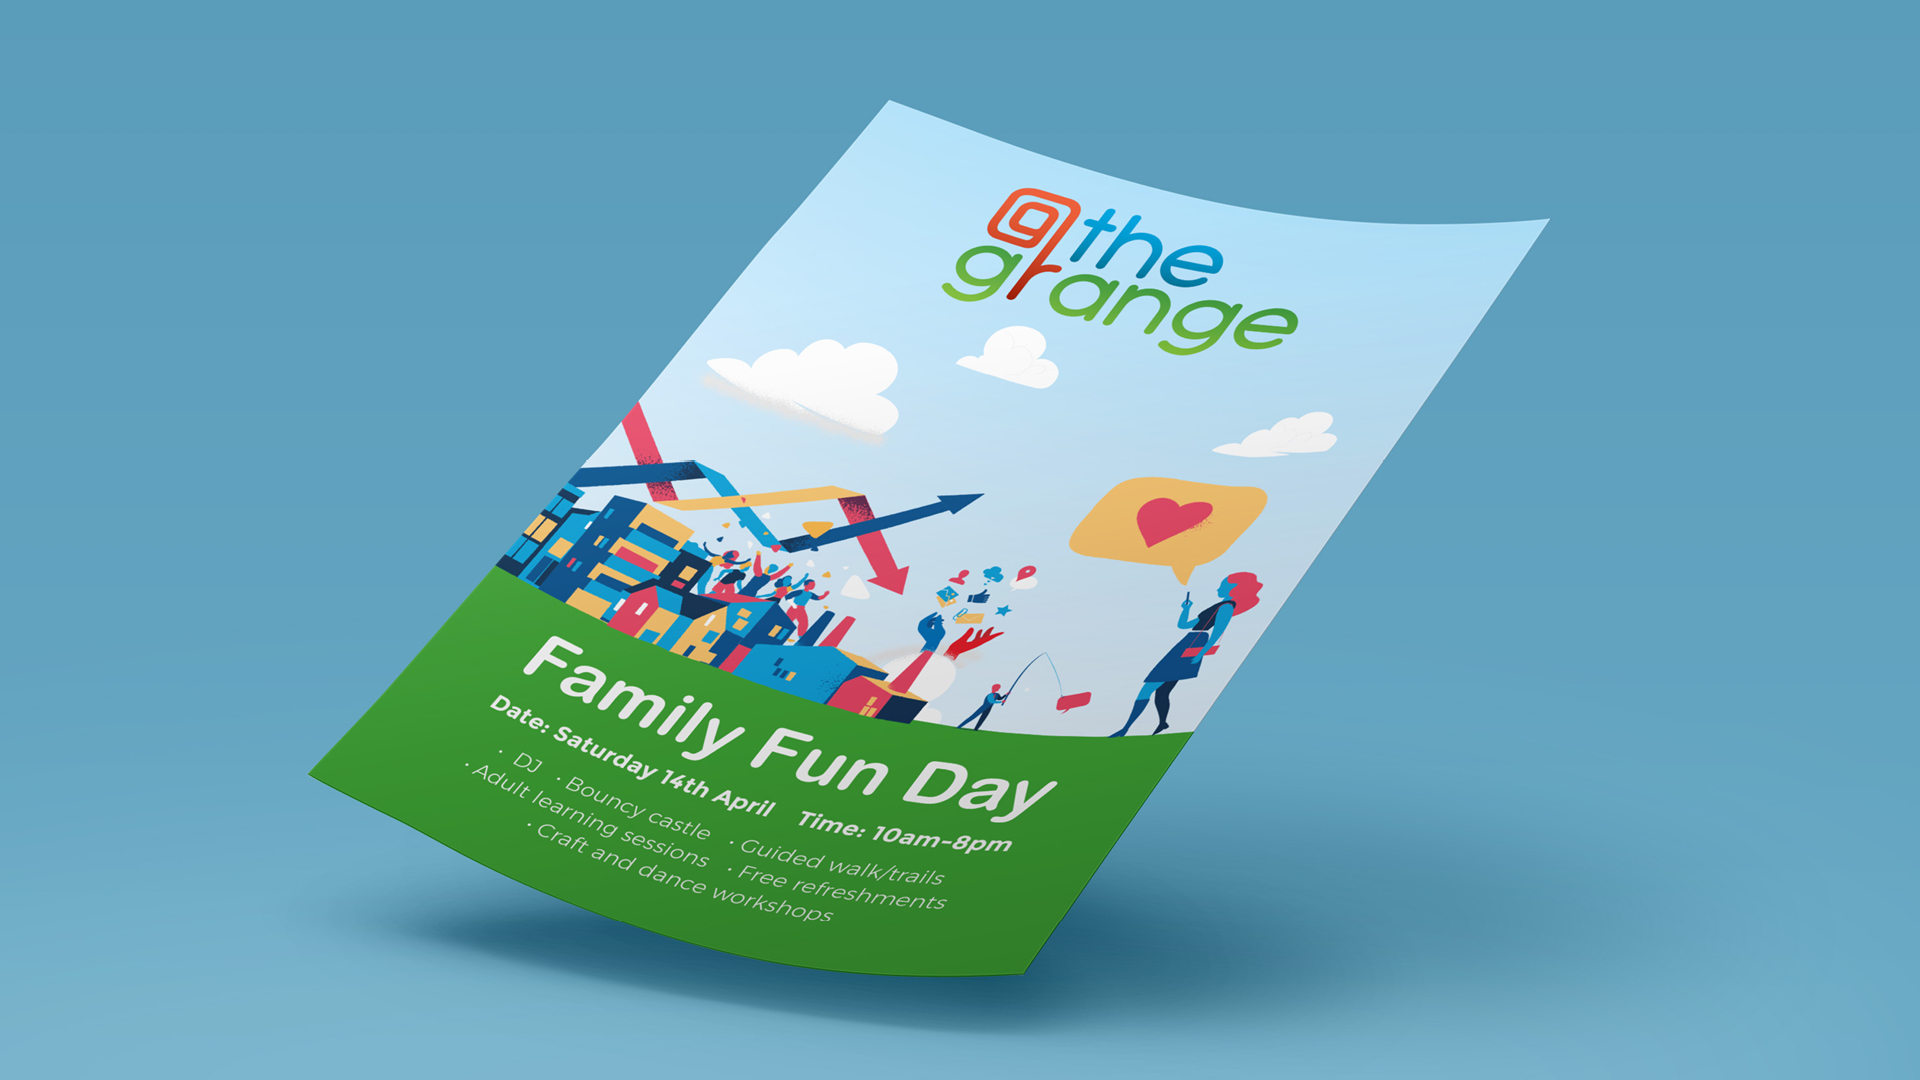 At the Grange Leaflet Design